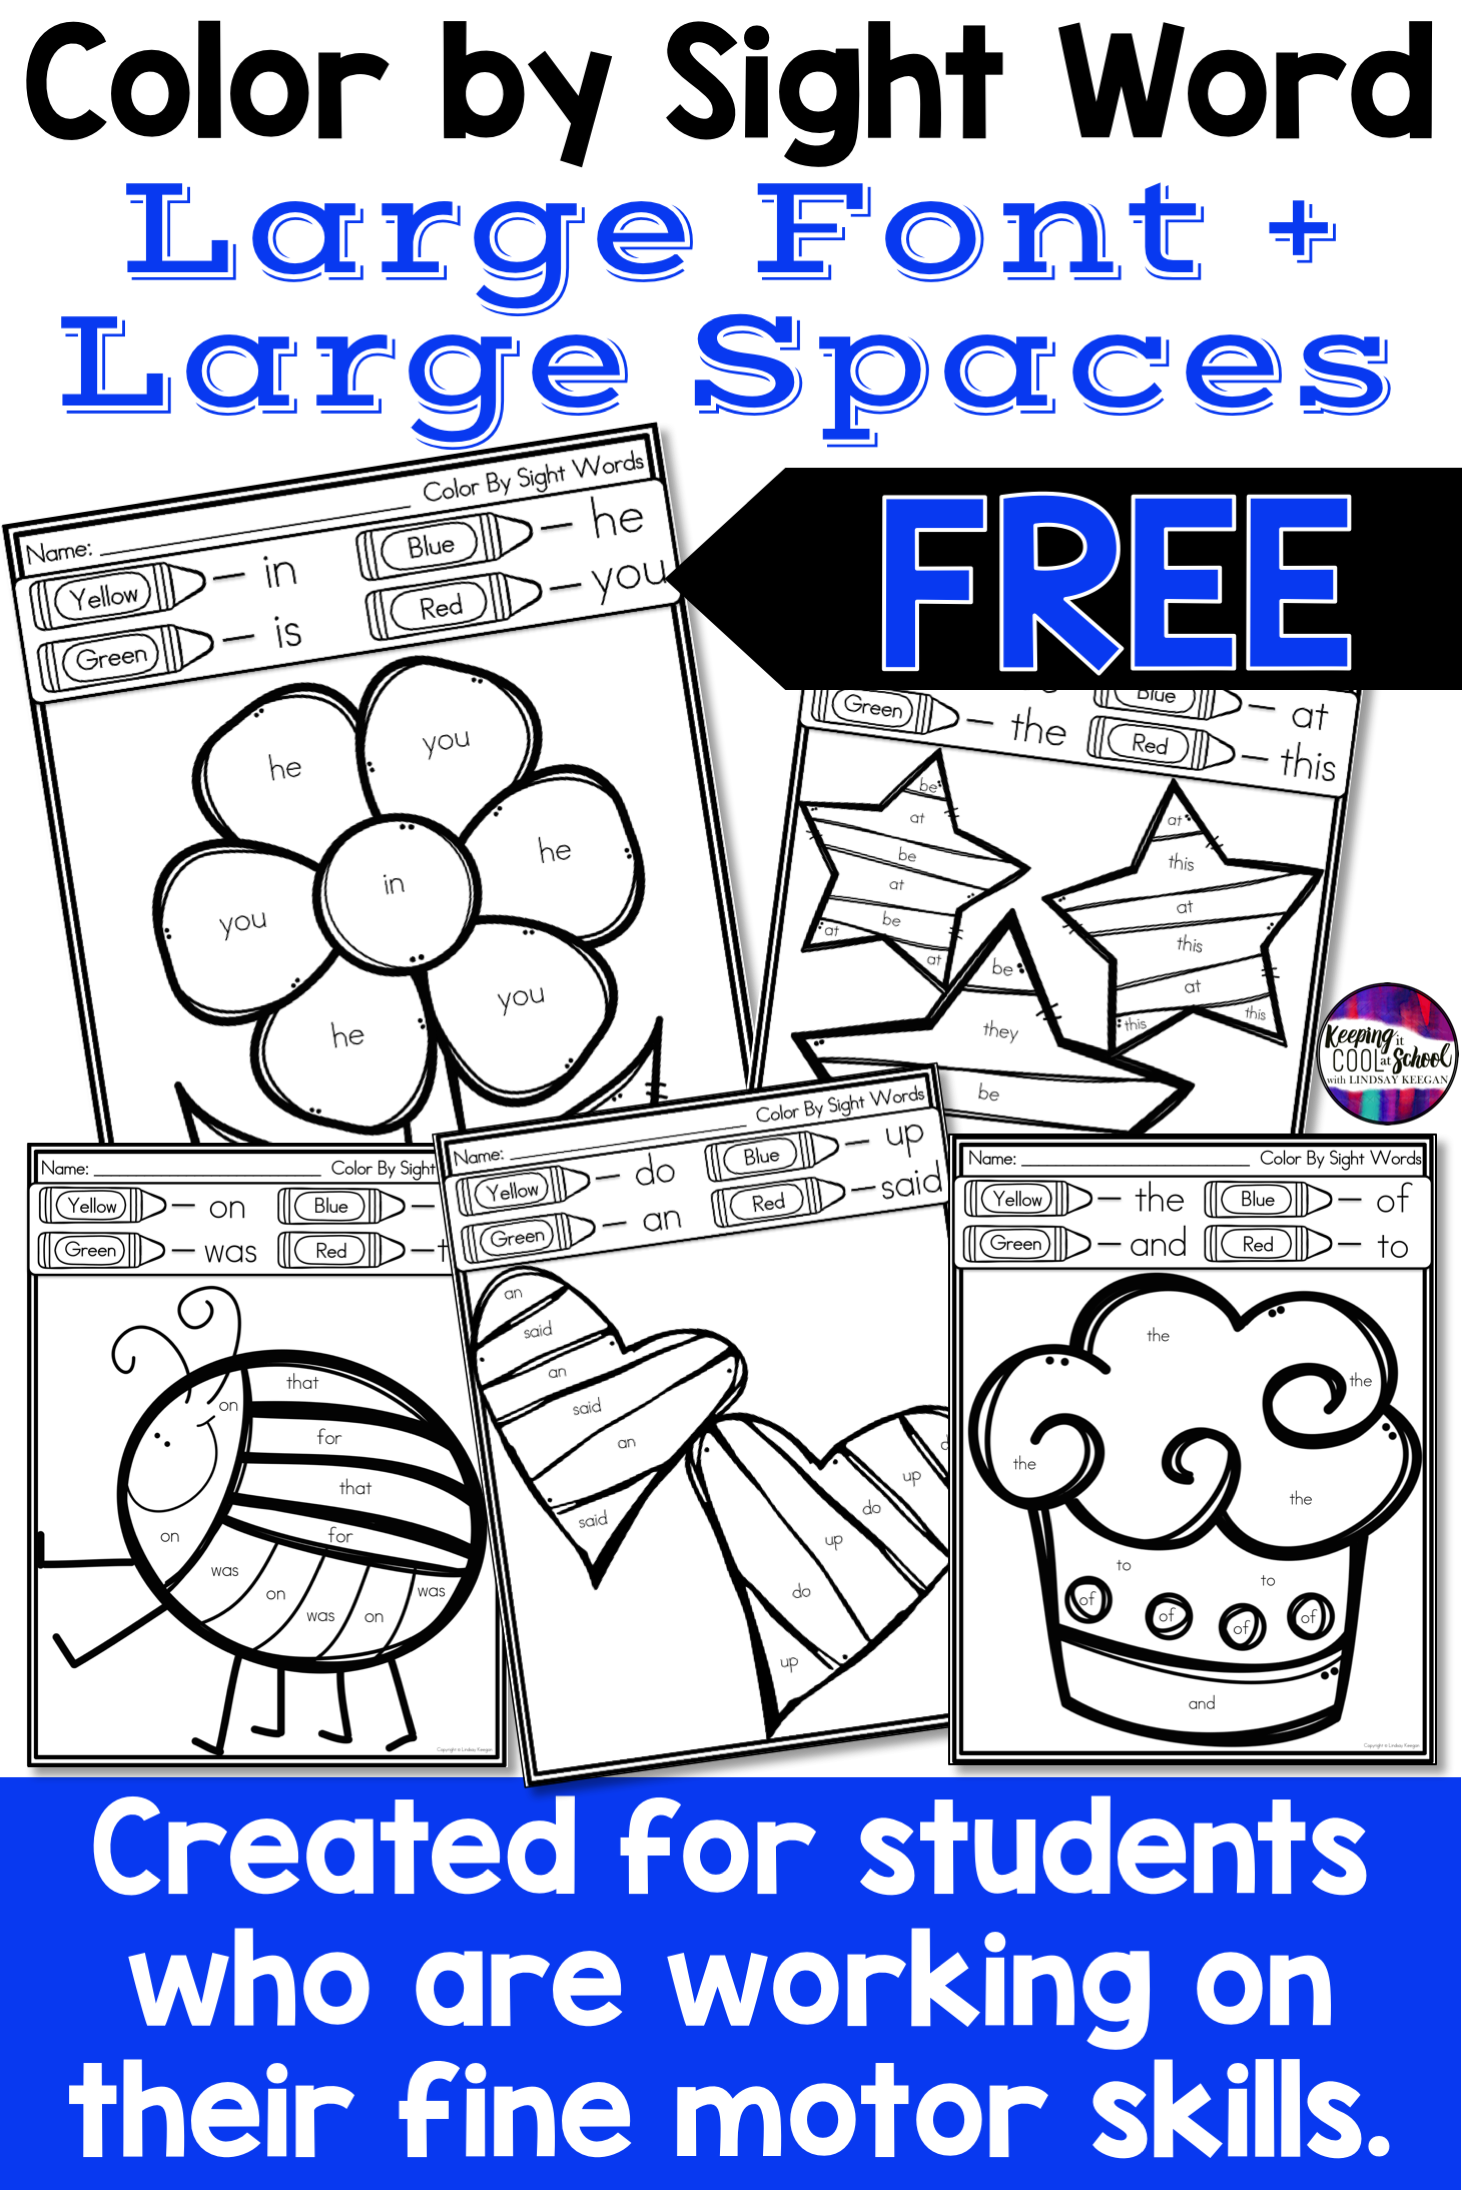 Color By Sight Word Worksheets With Large Spaces For Fine